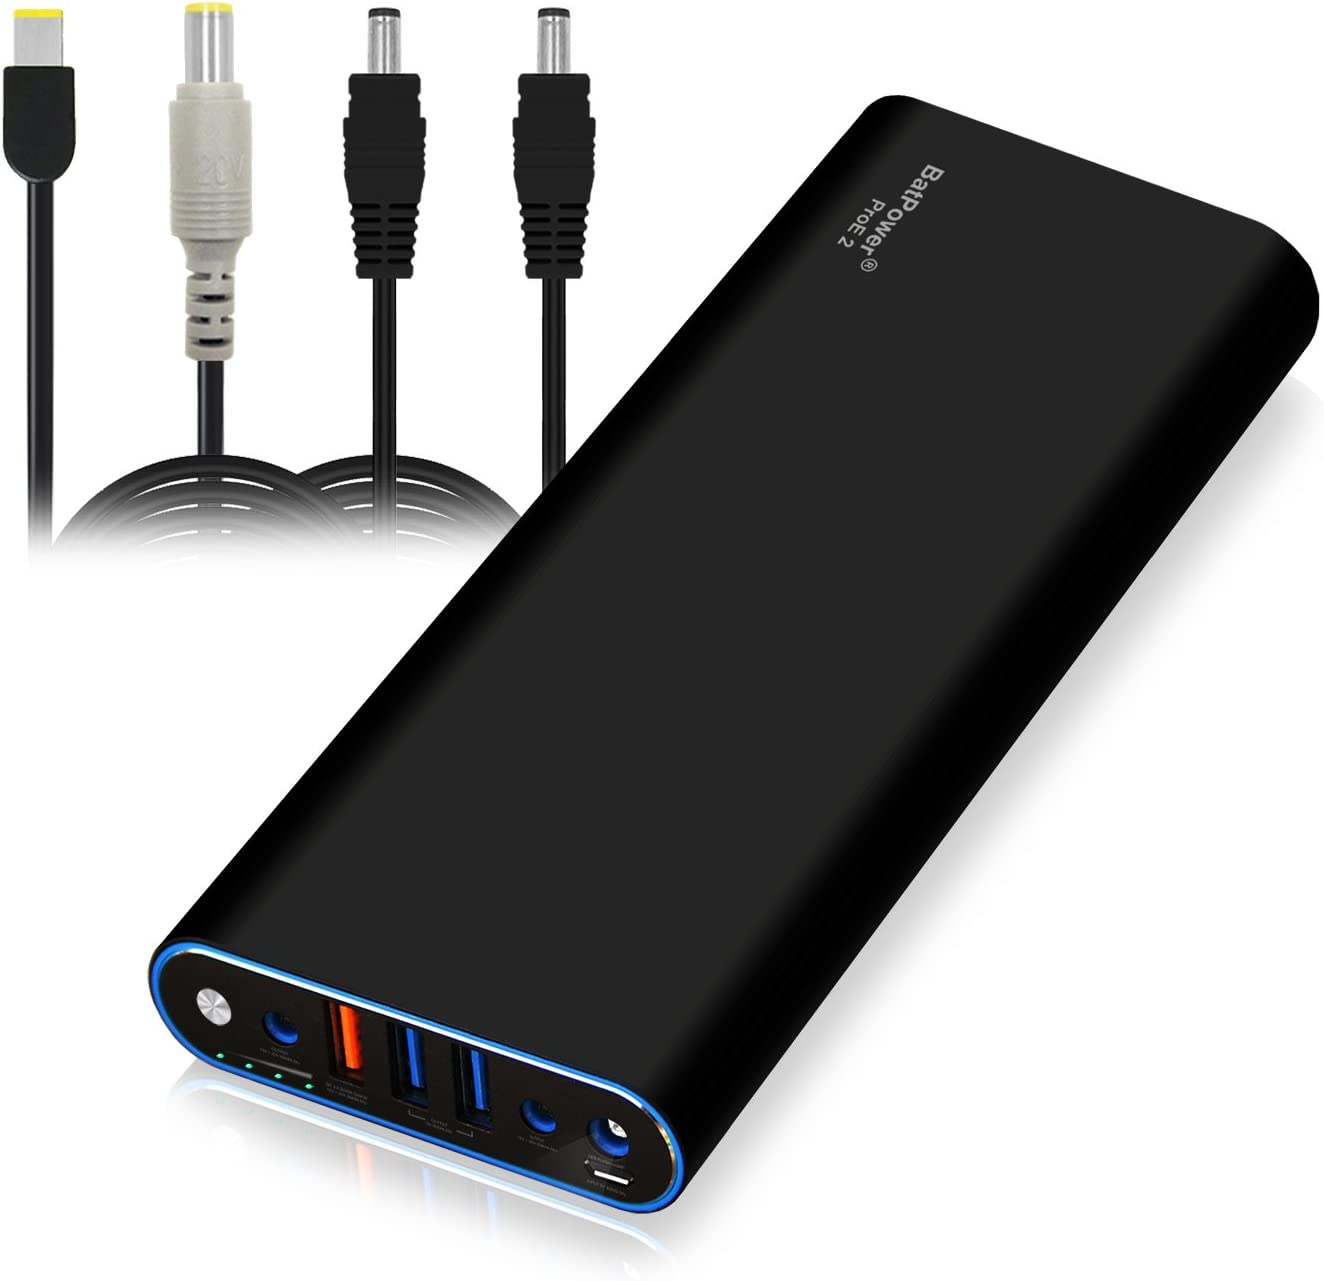 BatPower EX15L 210Wh Laptop Power Bank External Battery for Lenovo ThinkPad Carbon Ultrabook IdeaPad Helix Flex Yoga Notebook (Rectangle or Circular Connector) USB QC Fast Charge Tablet Smartphone